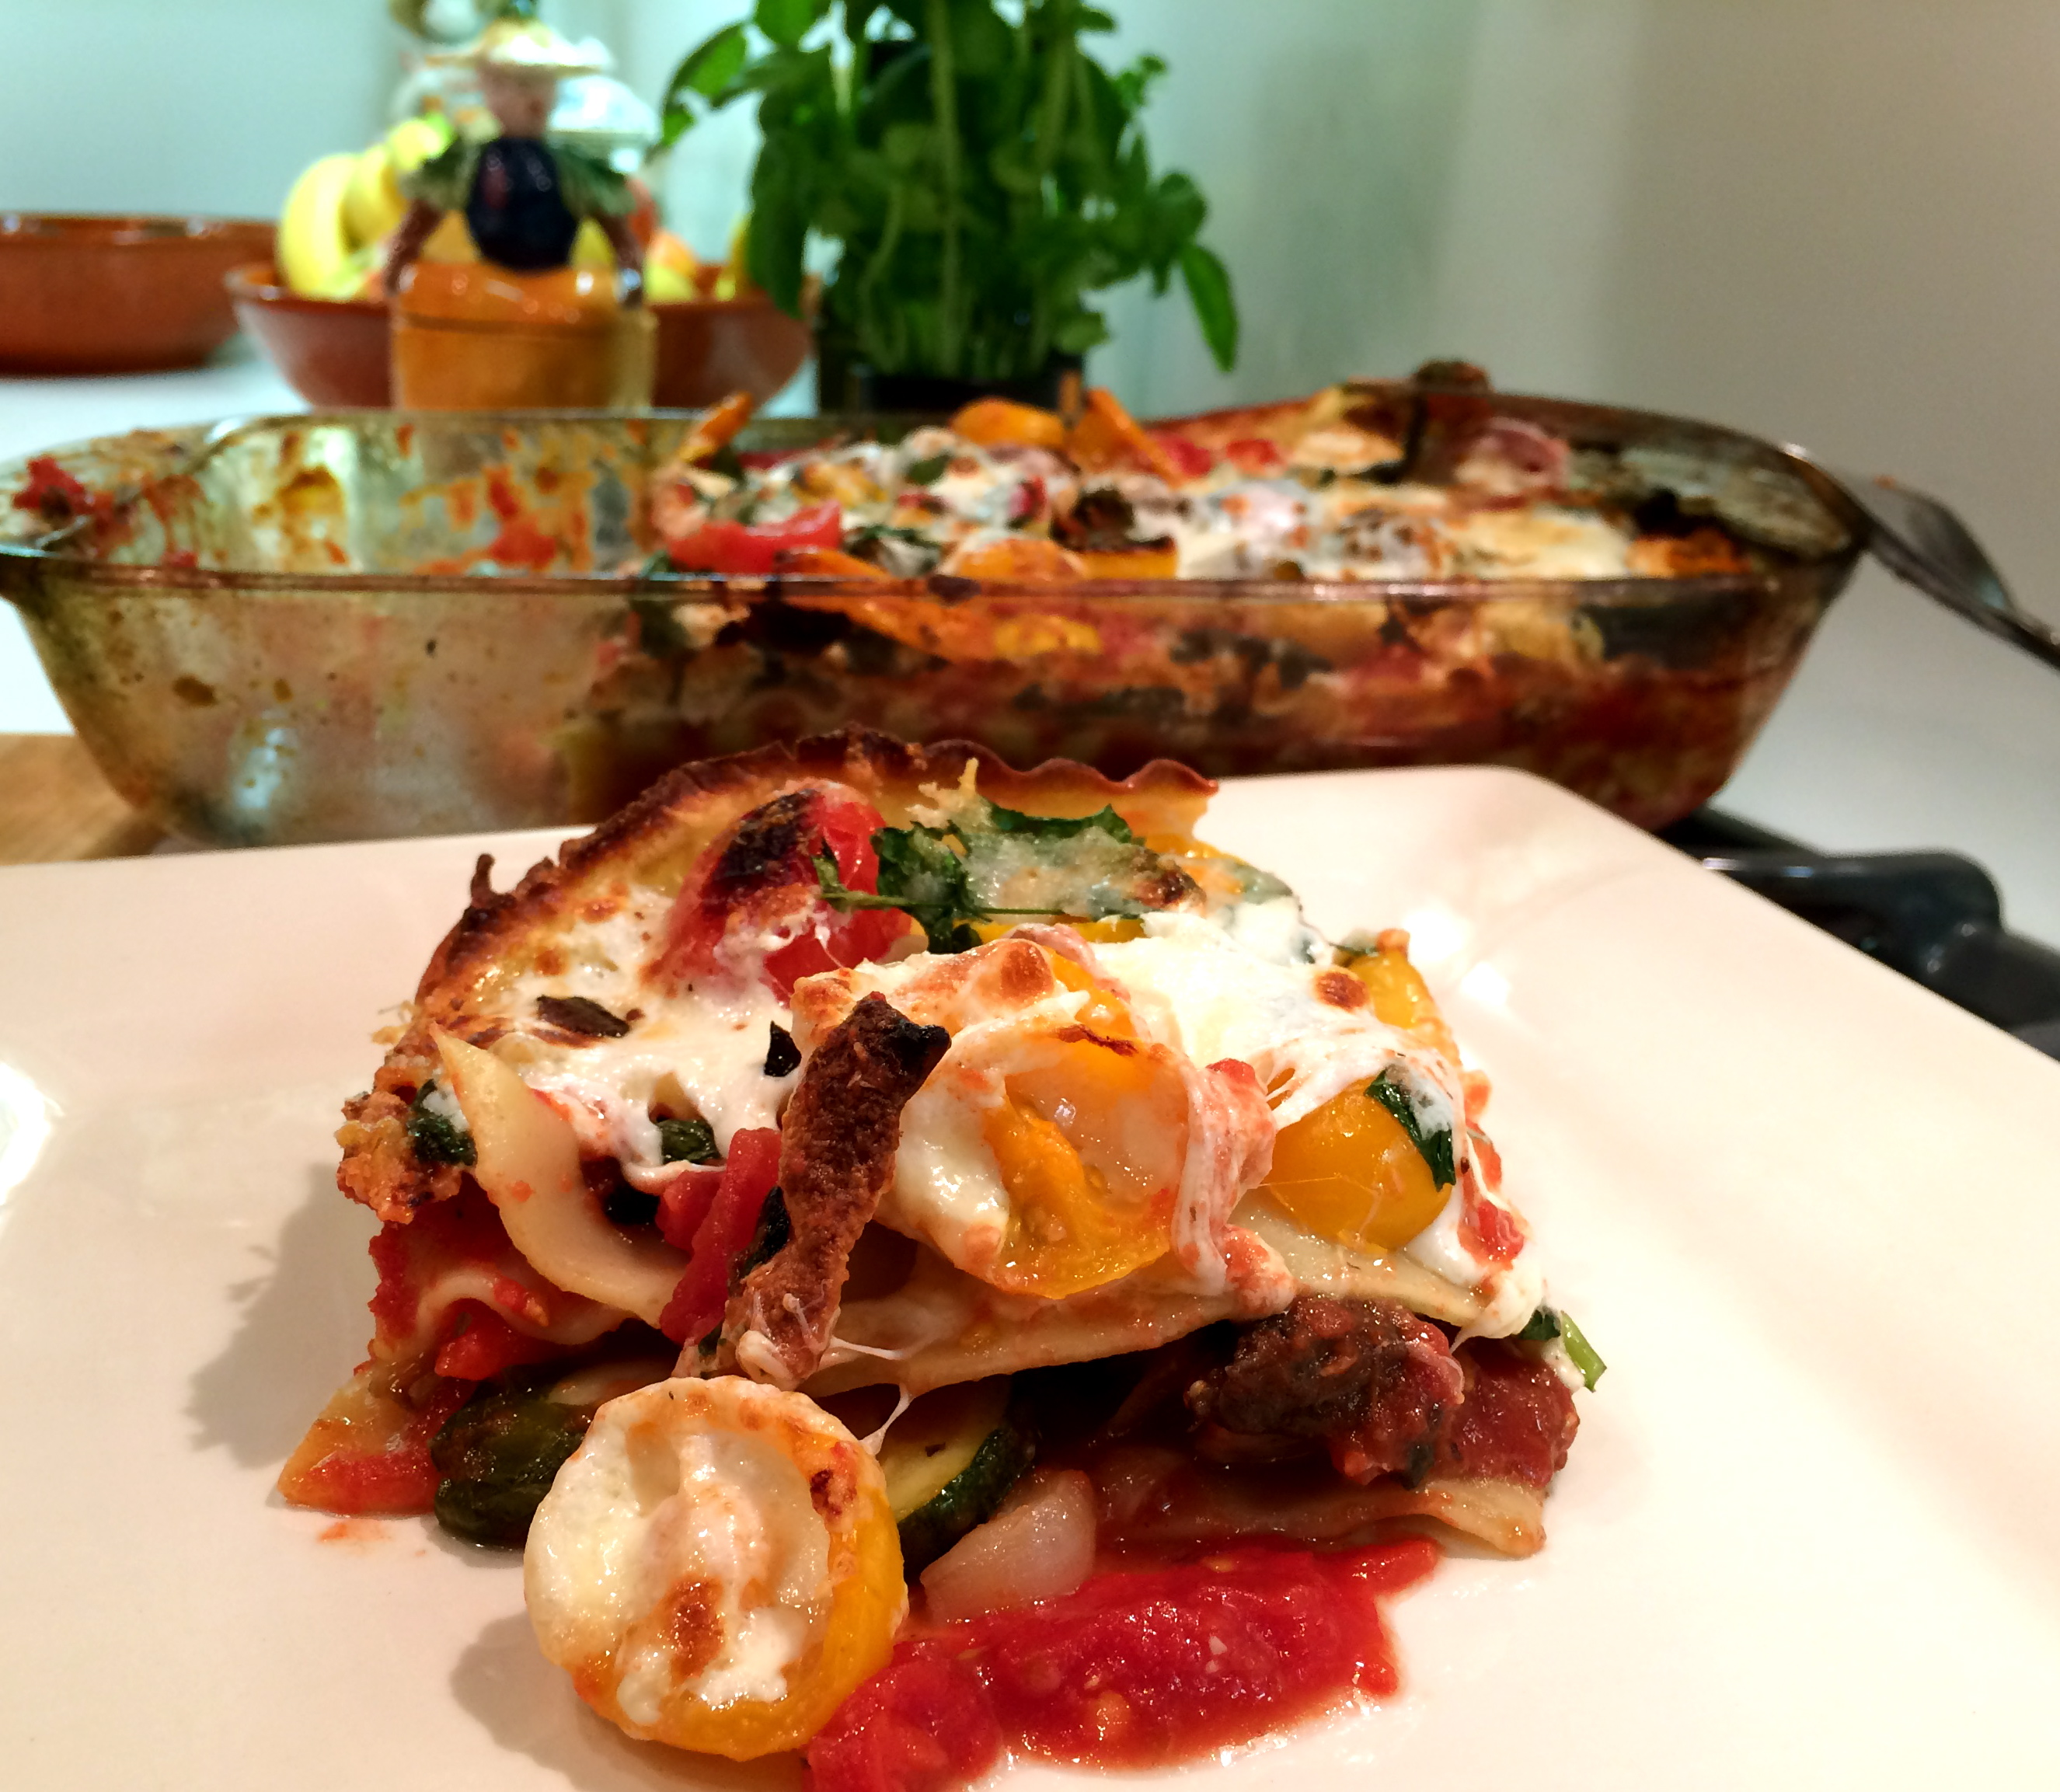 Protected: Slim Man Cooks Roasted Vegetable Lasagna